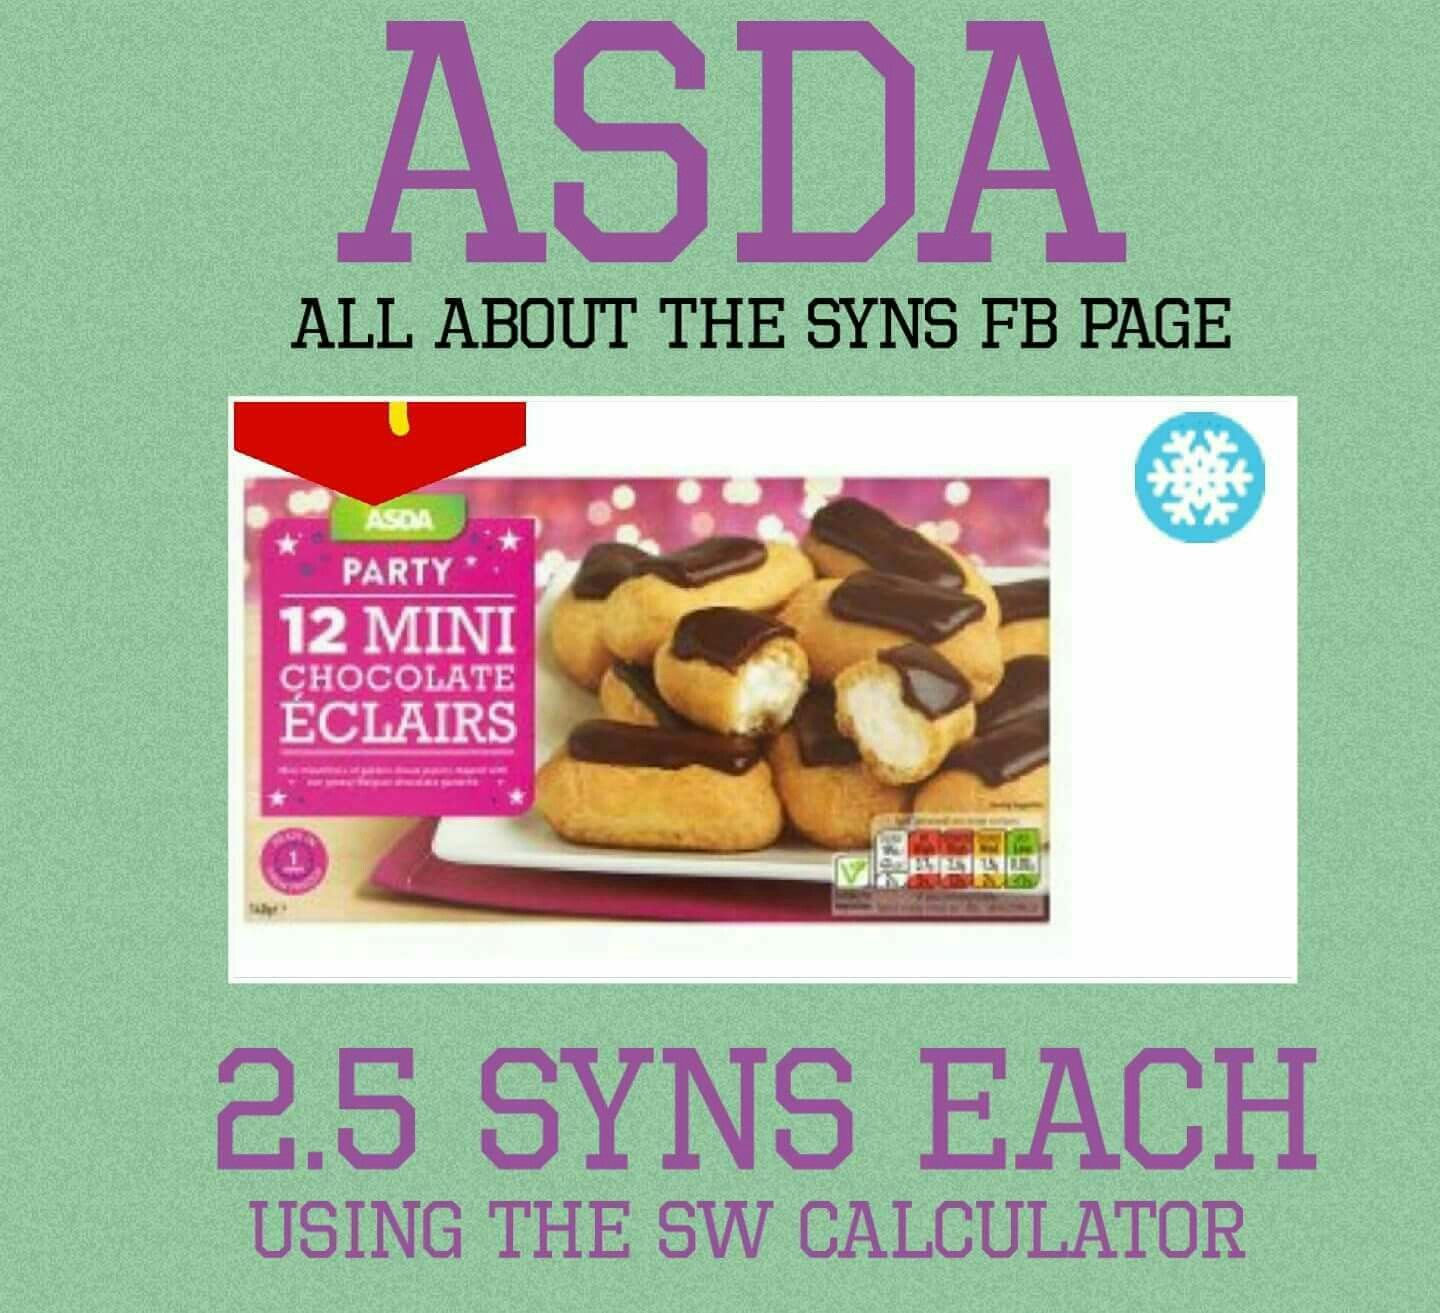 Pin By Maz Mignuna On Asda Slimming World Asda Slimming World